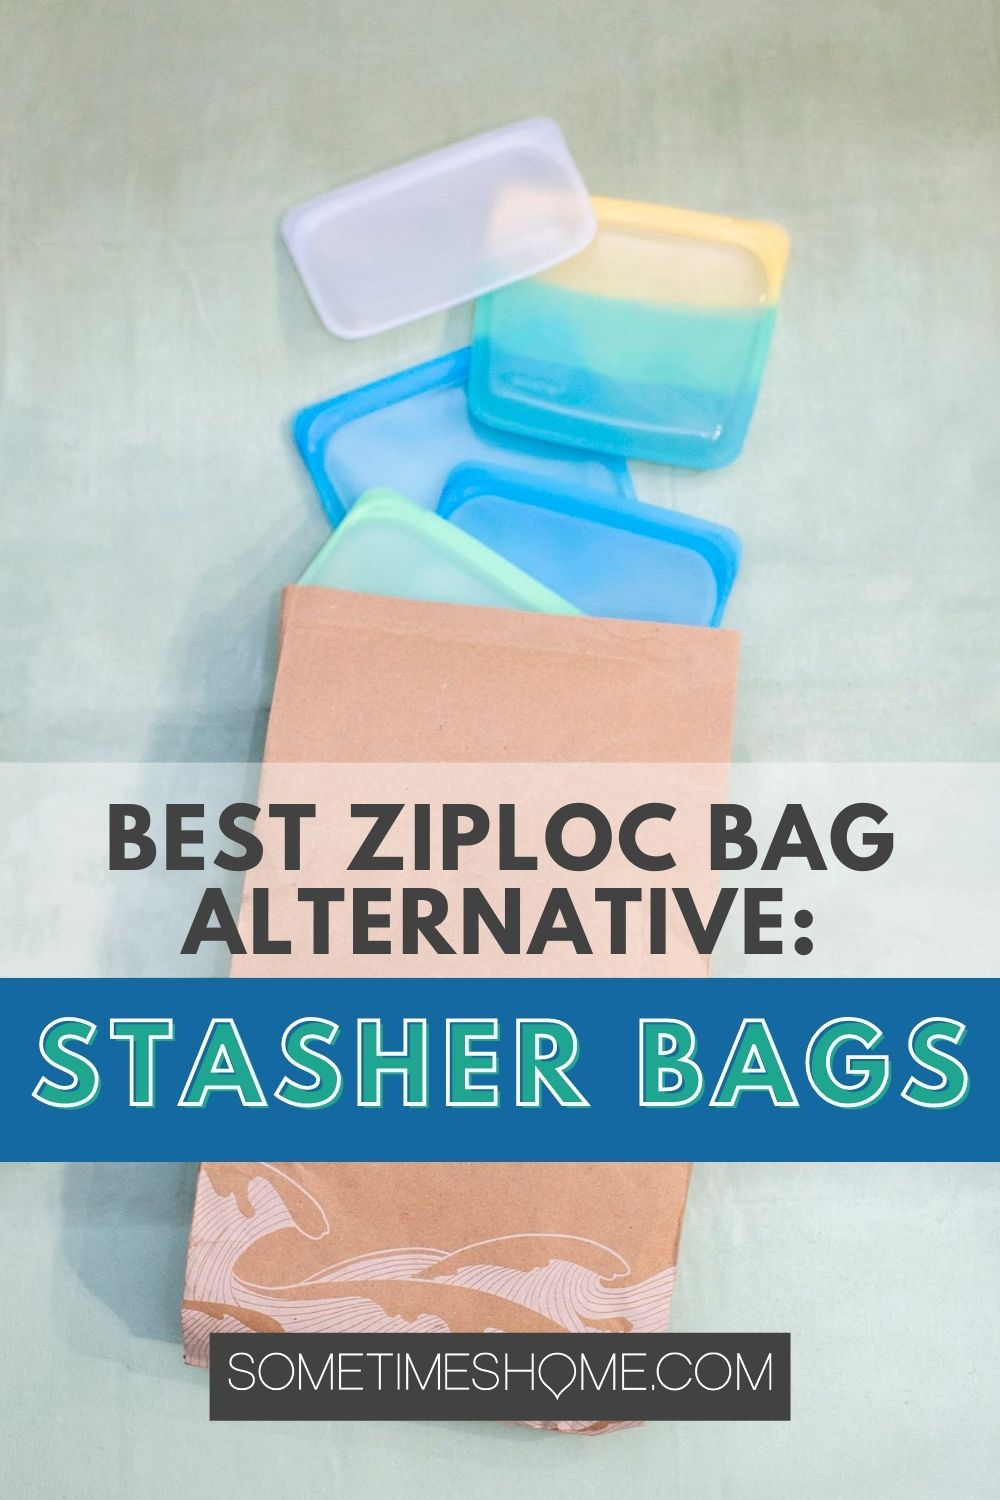 Best Ziploc bag alternative: Stasher Bags, with an image of the colorful bags coming out of the brown bag shipping packing, behind it.